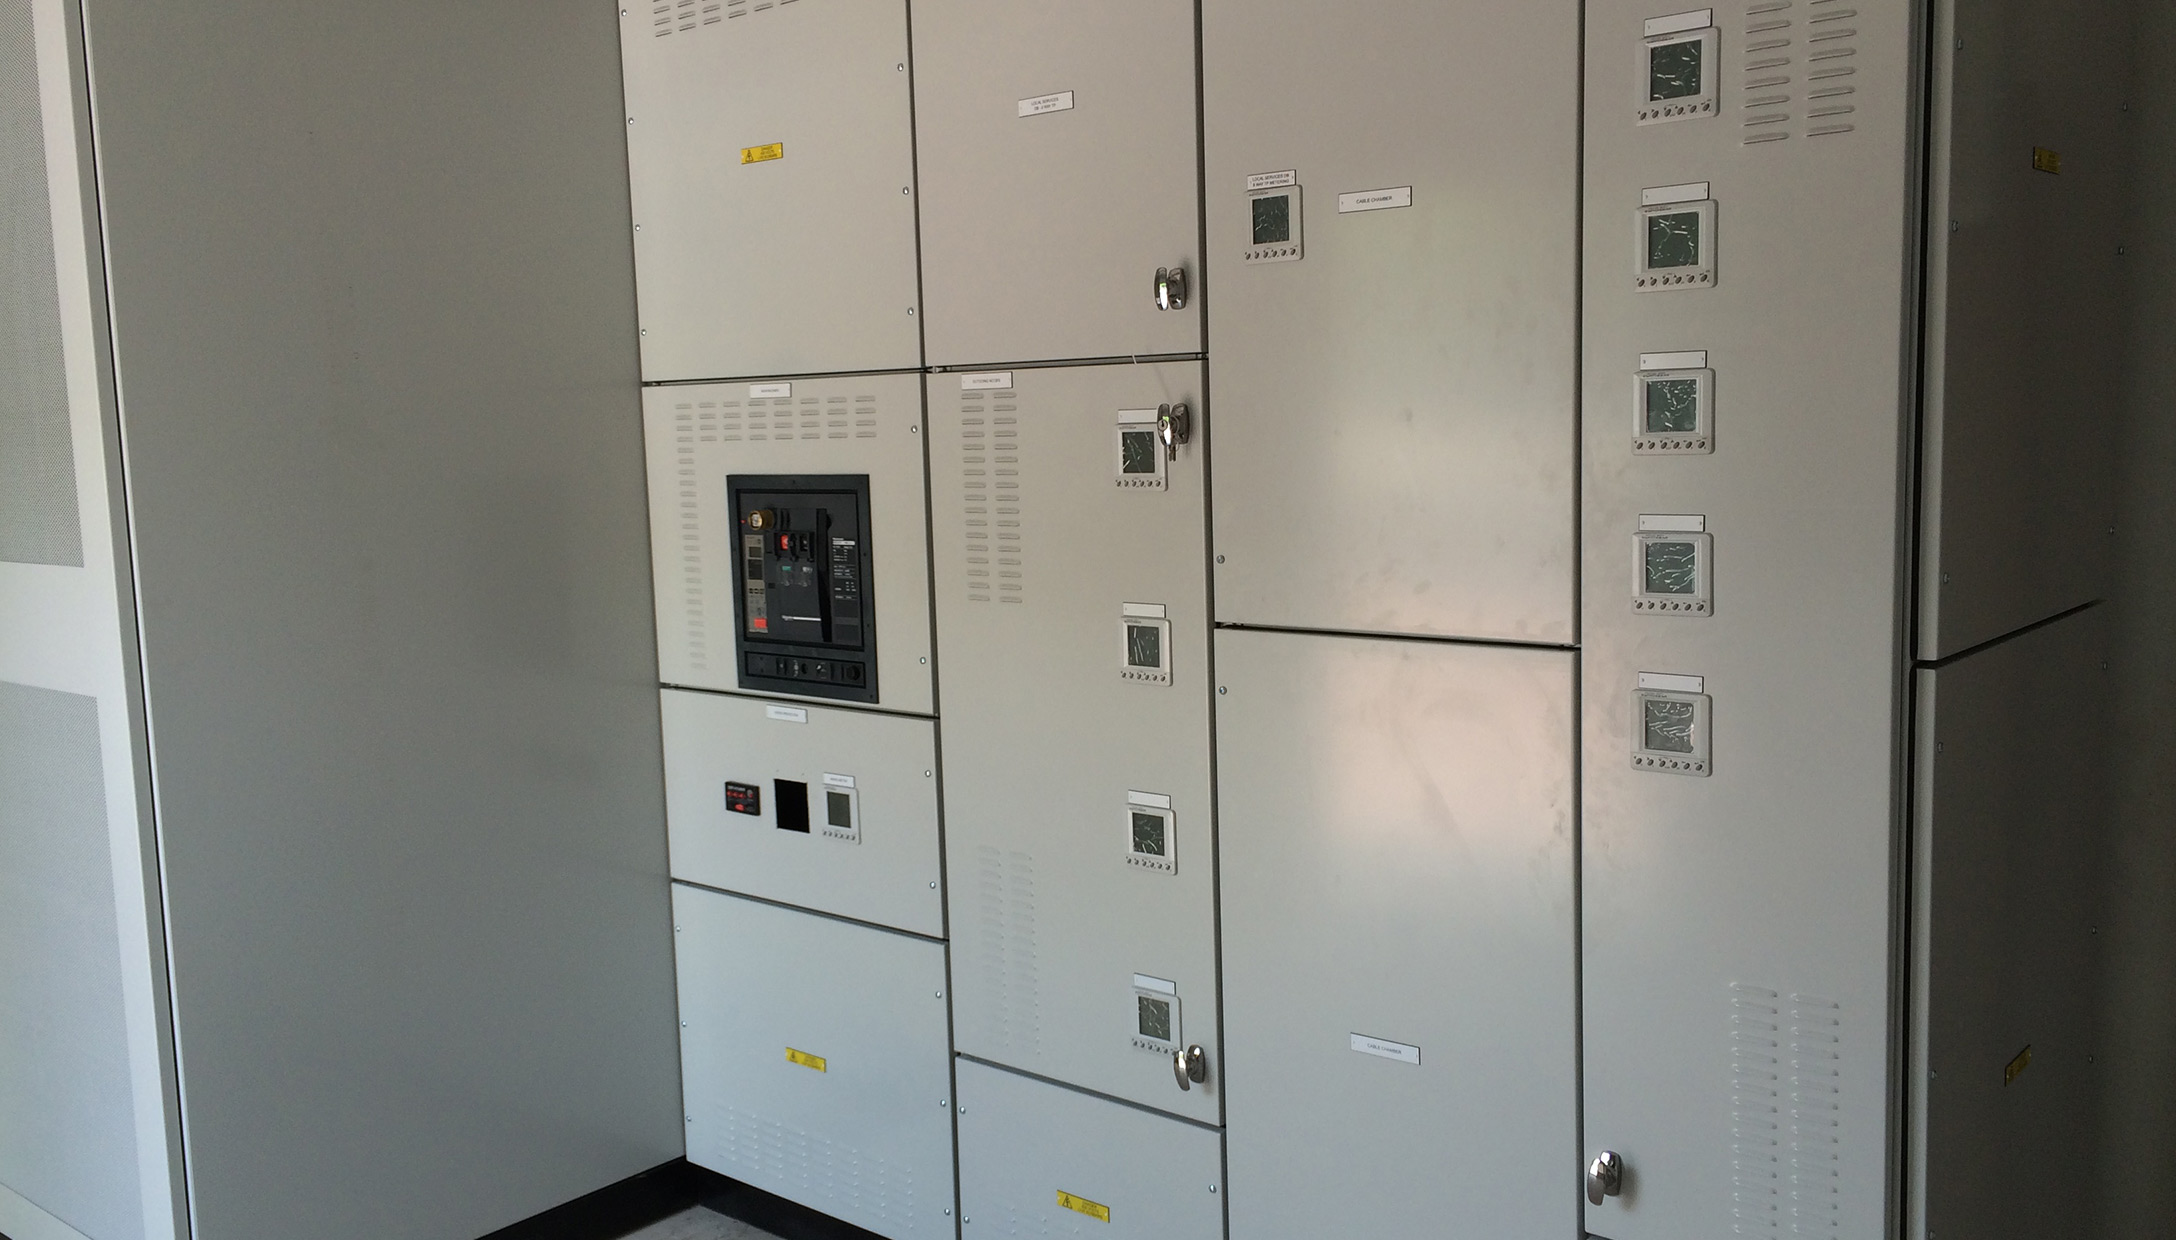 images/Substation-Slide.jpg